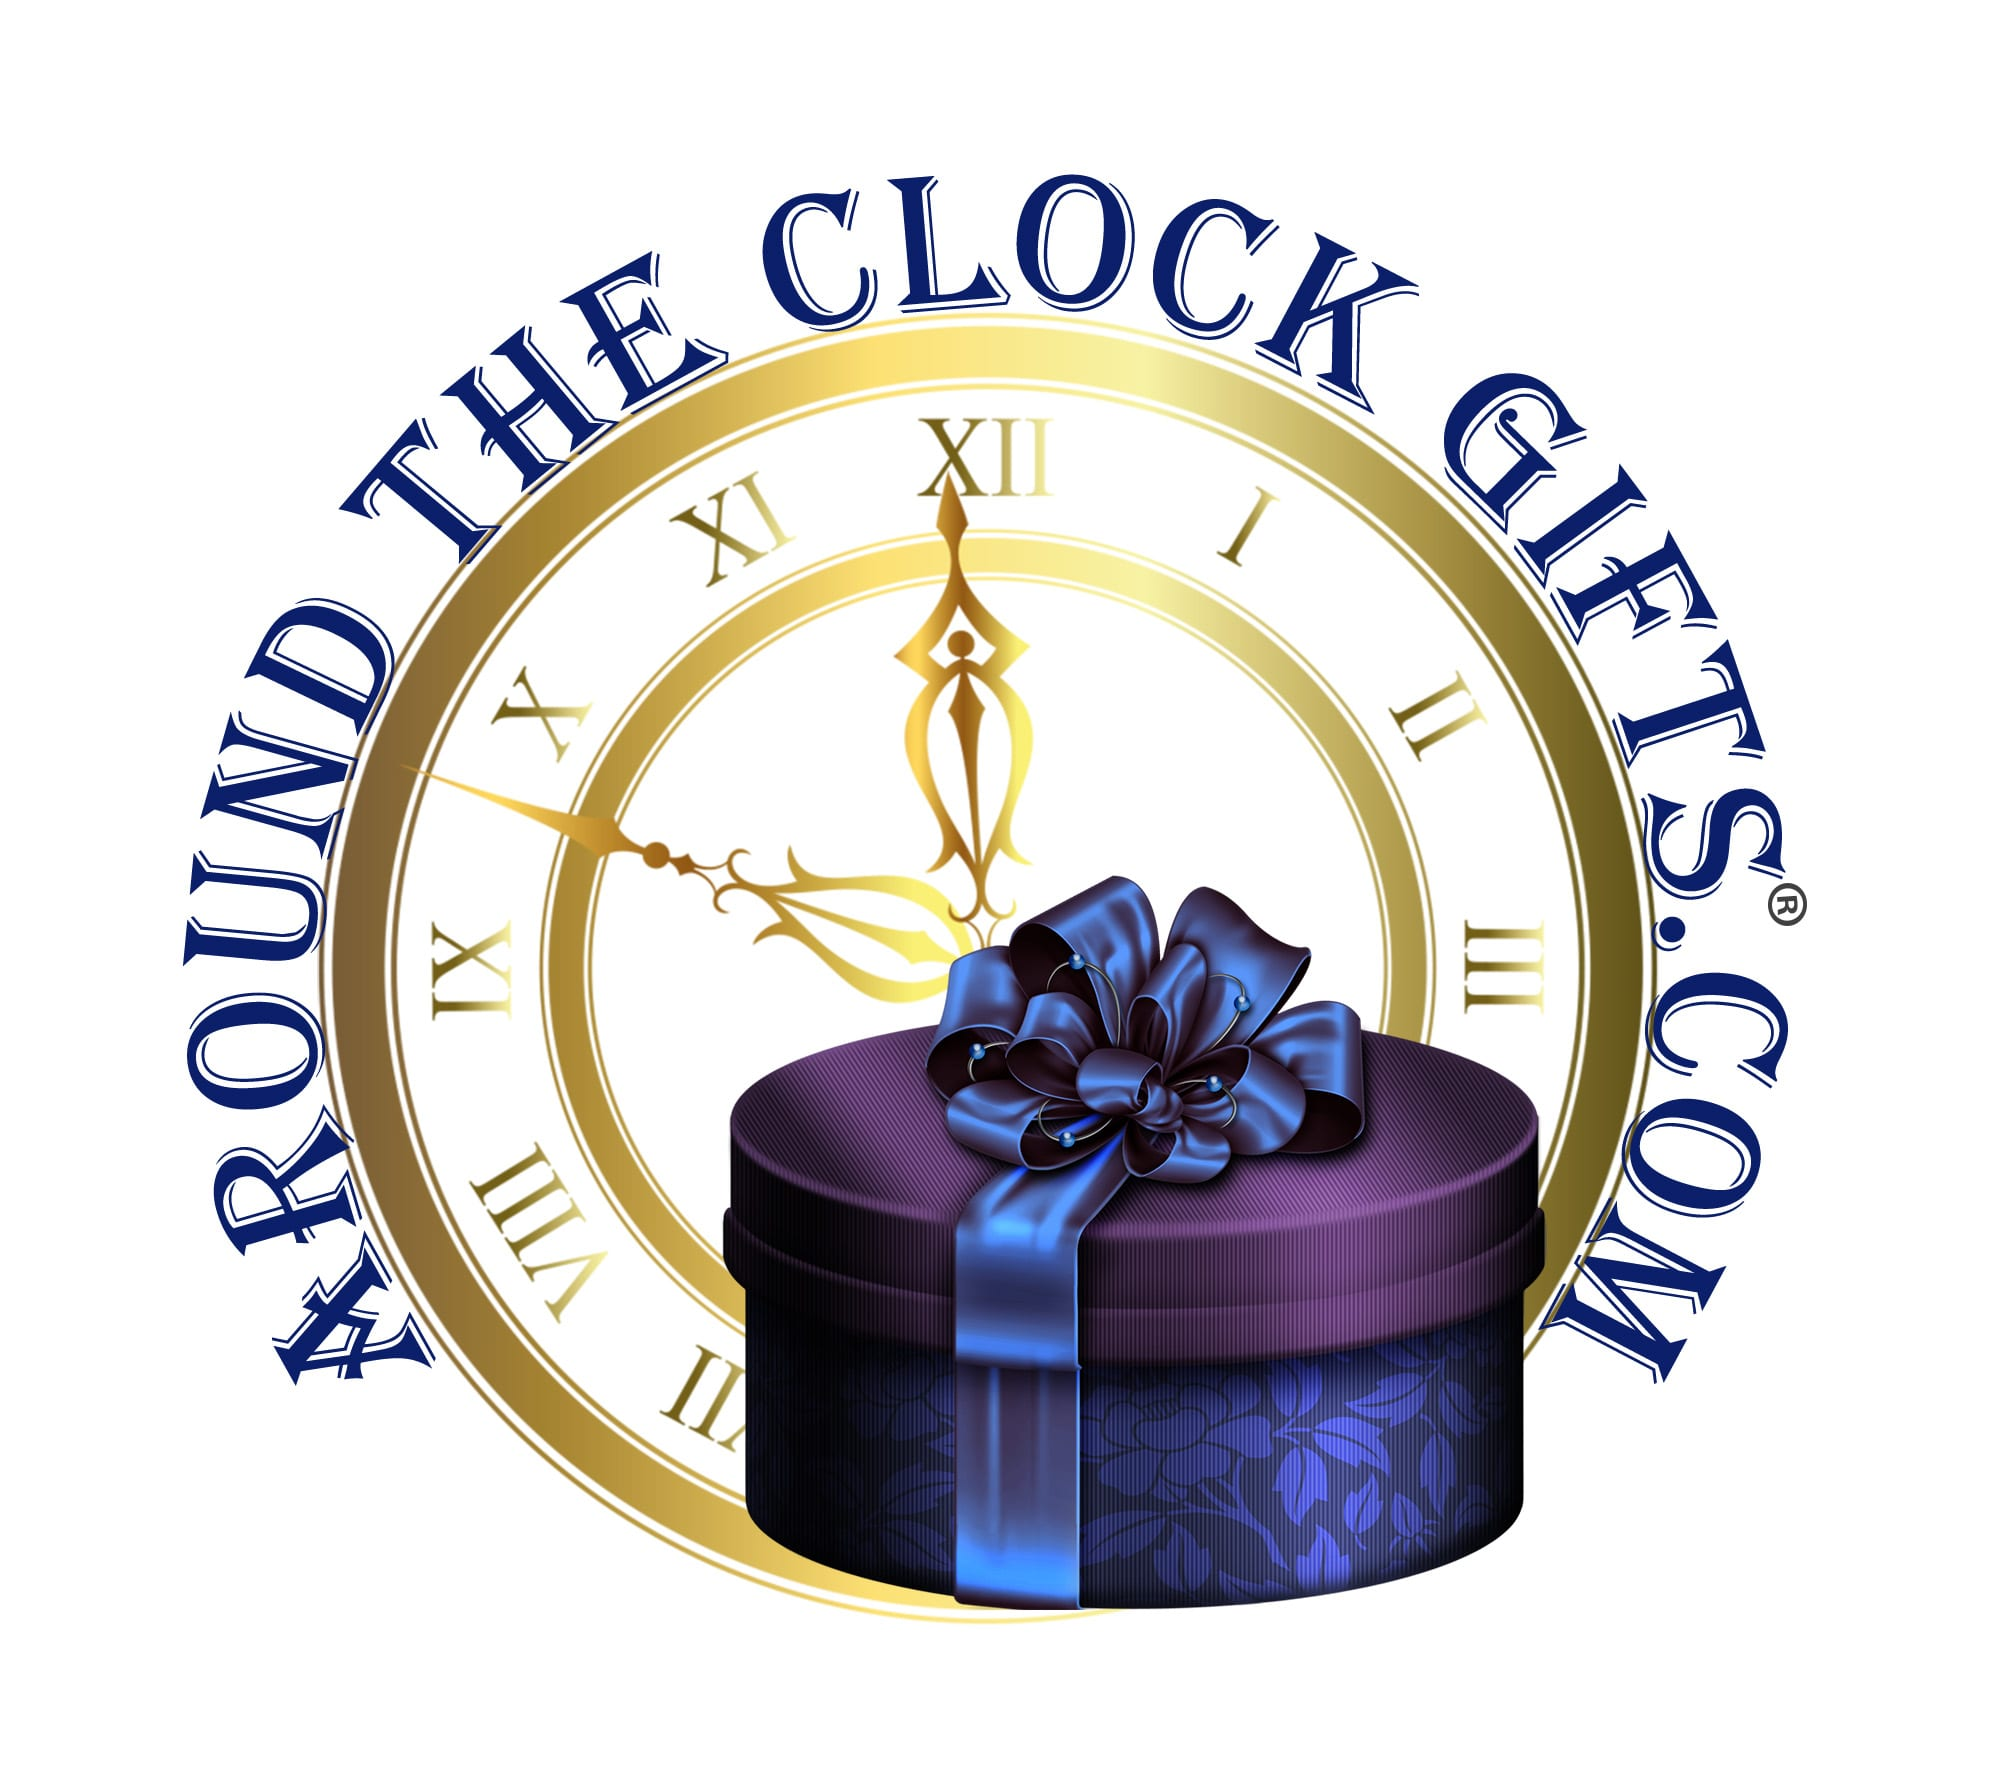 Aroundtheclockgifts is the best gift shop for Homemade Gifts From US